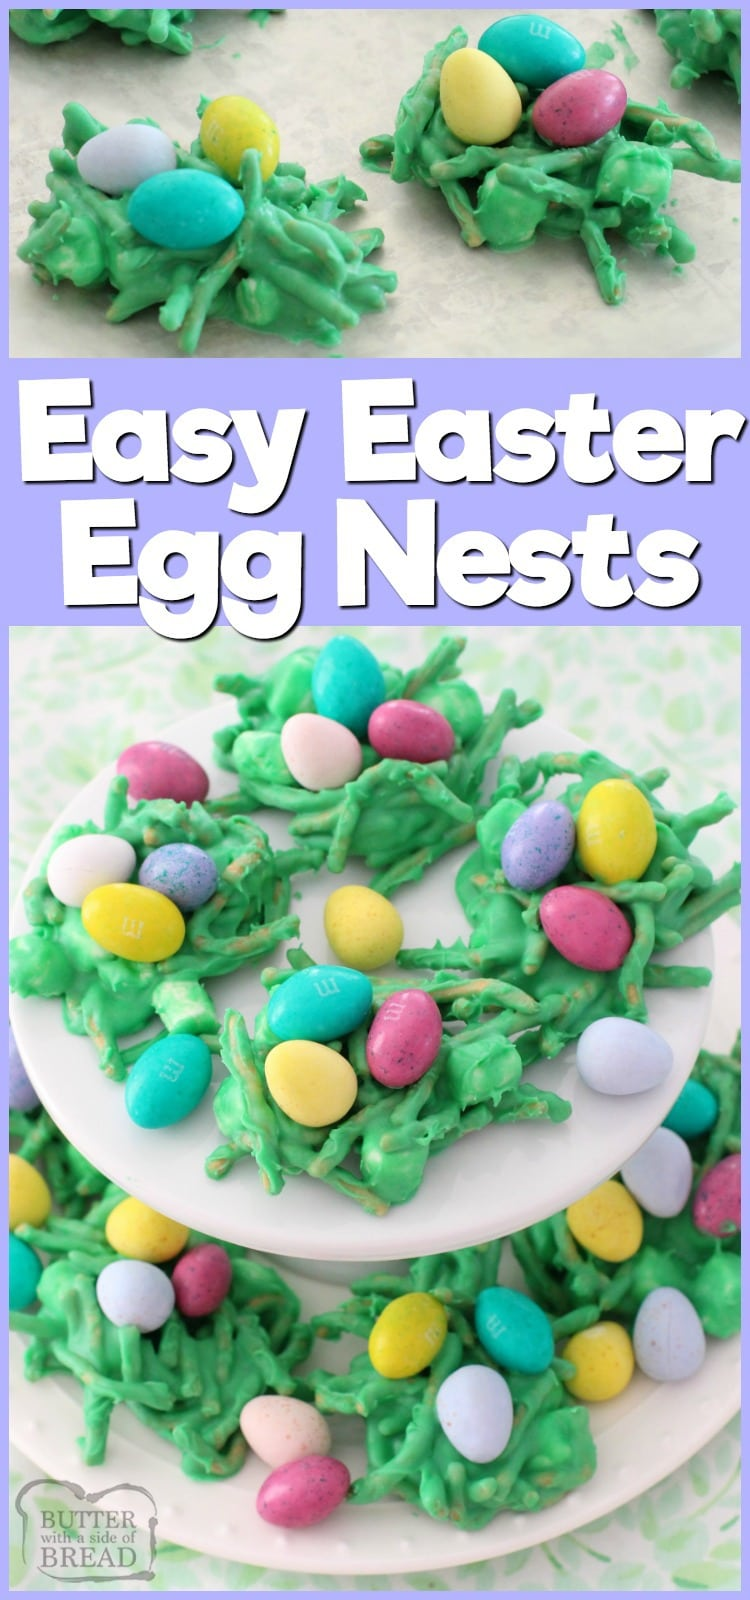 Fun & festive Easter Egg Nests recipe using white chocolate, marshmallows and chocolate eggs of course! Simple dessert recipe by Butter With A Side of Bread